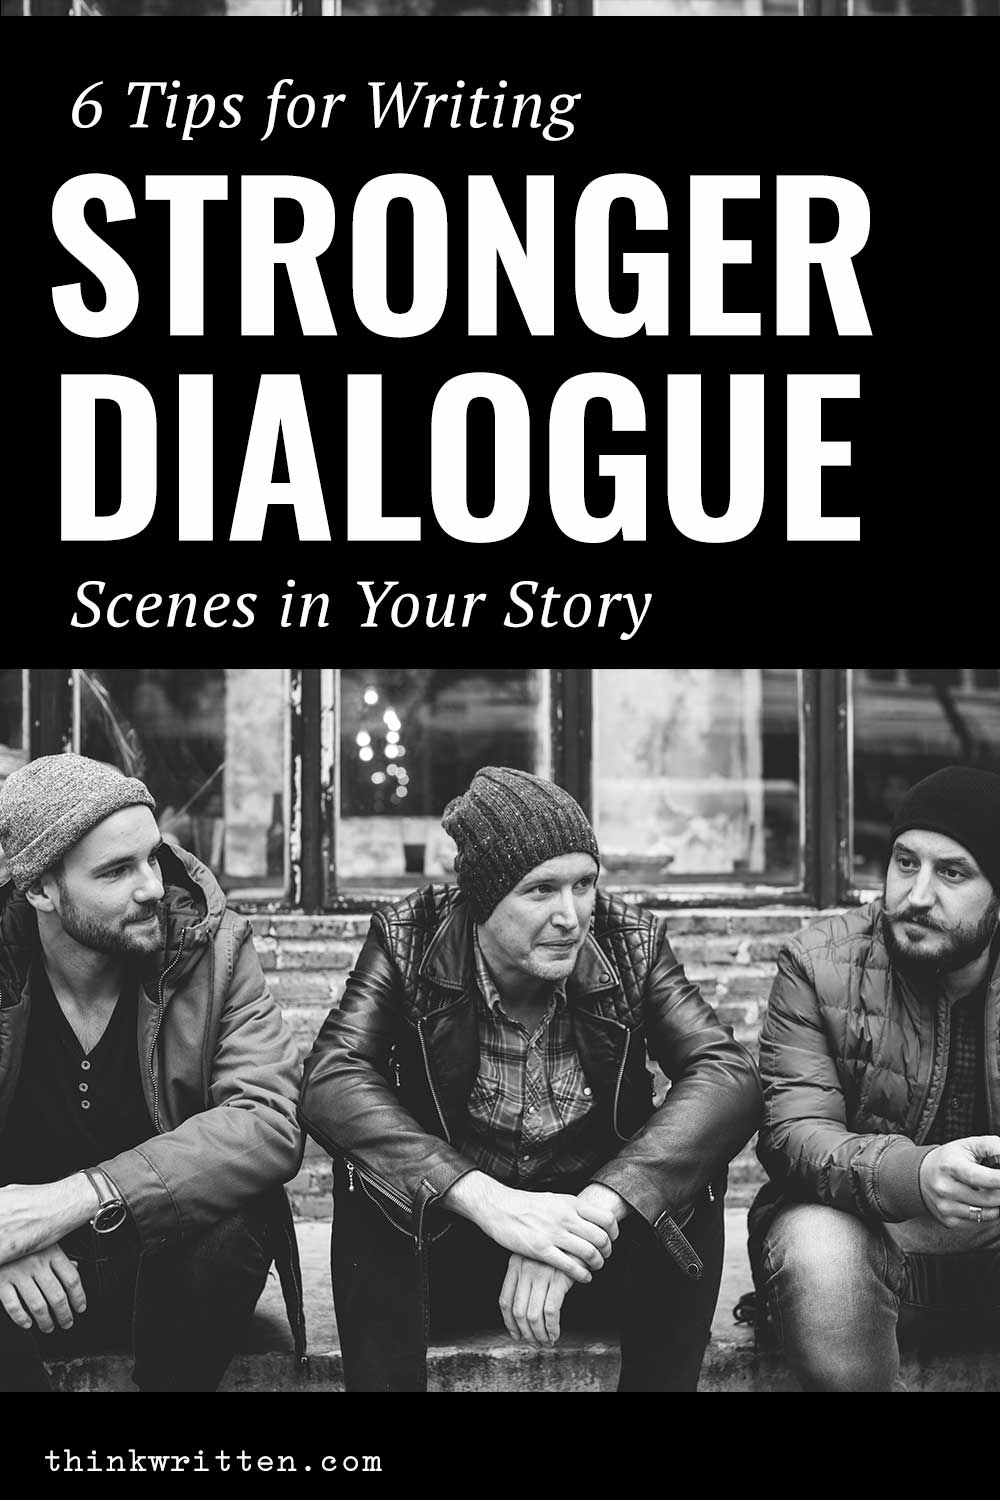 6 tips for writing powerful dialogue